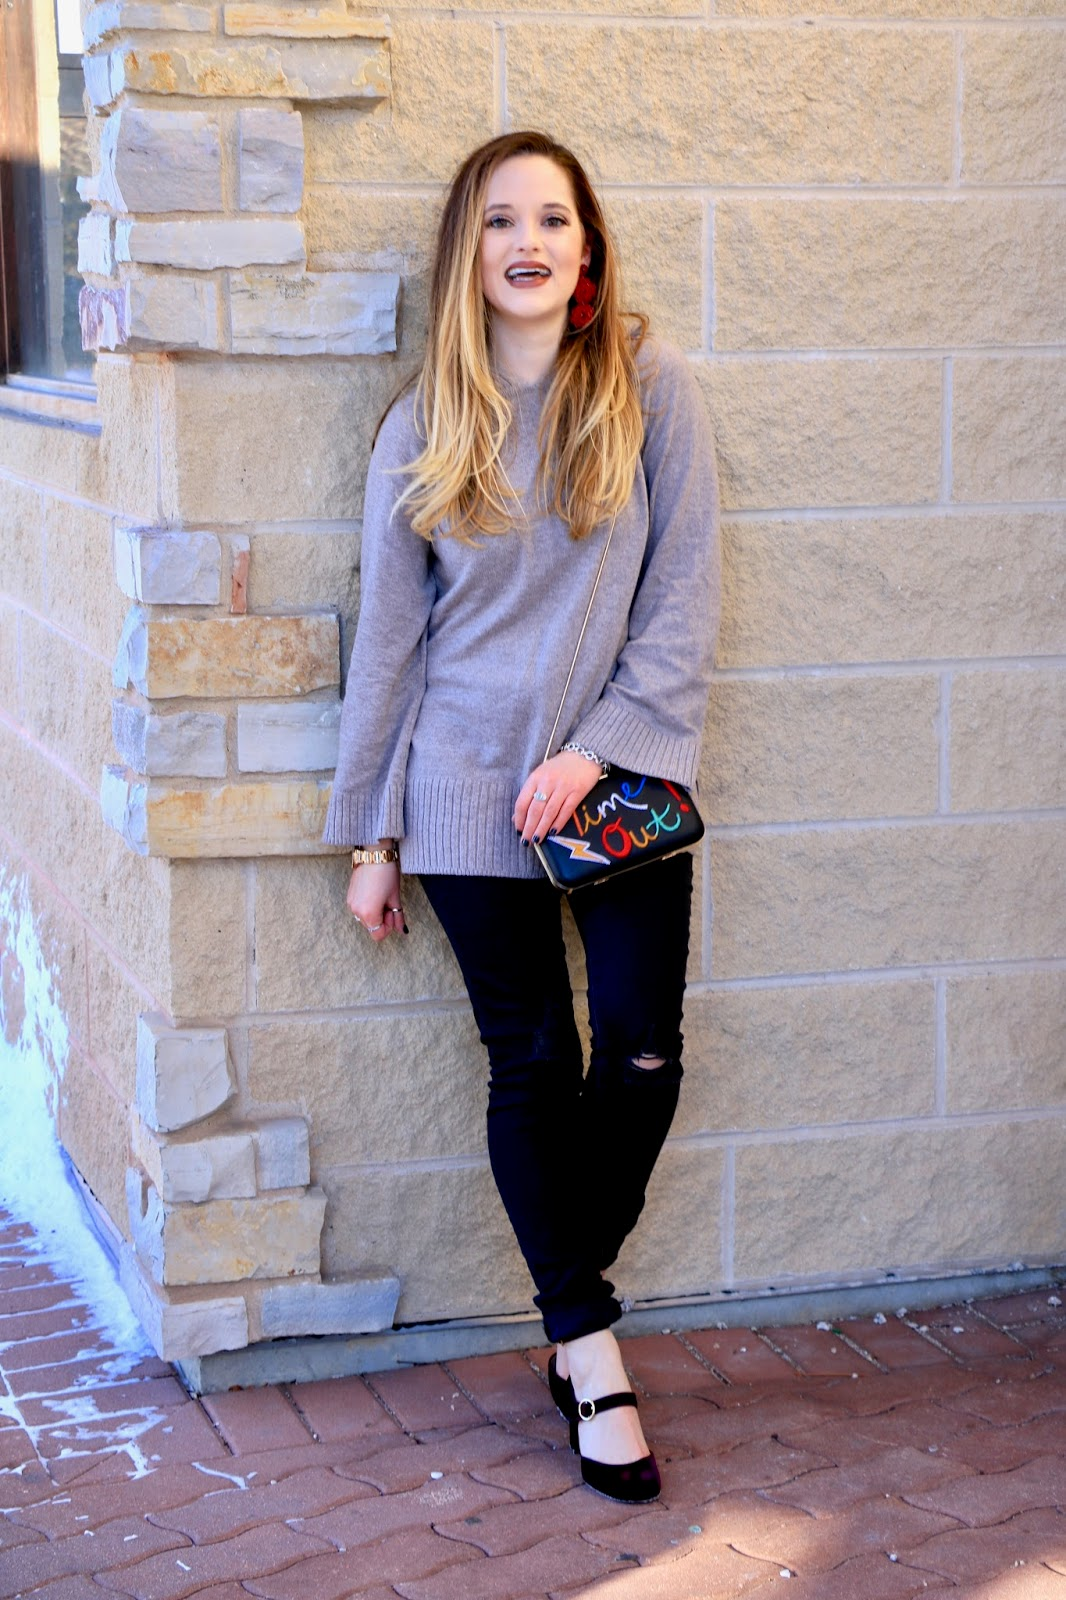 Nyc fashion blogger Kathleen Harper showing how to wear a hoodie stylishly